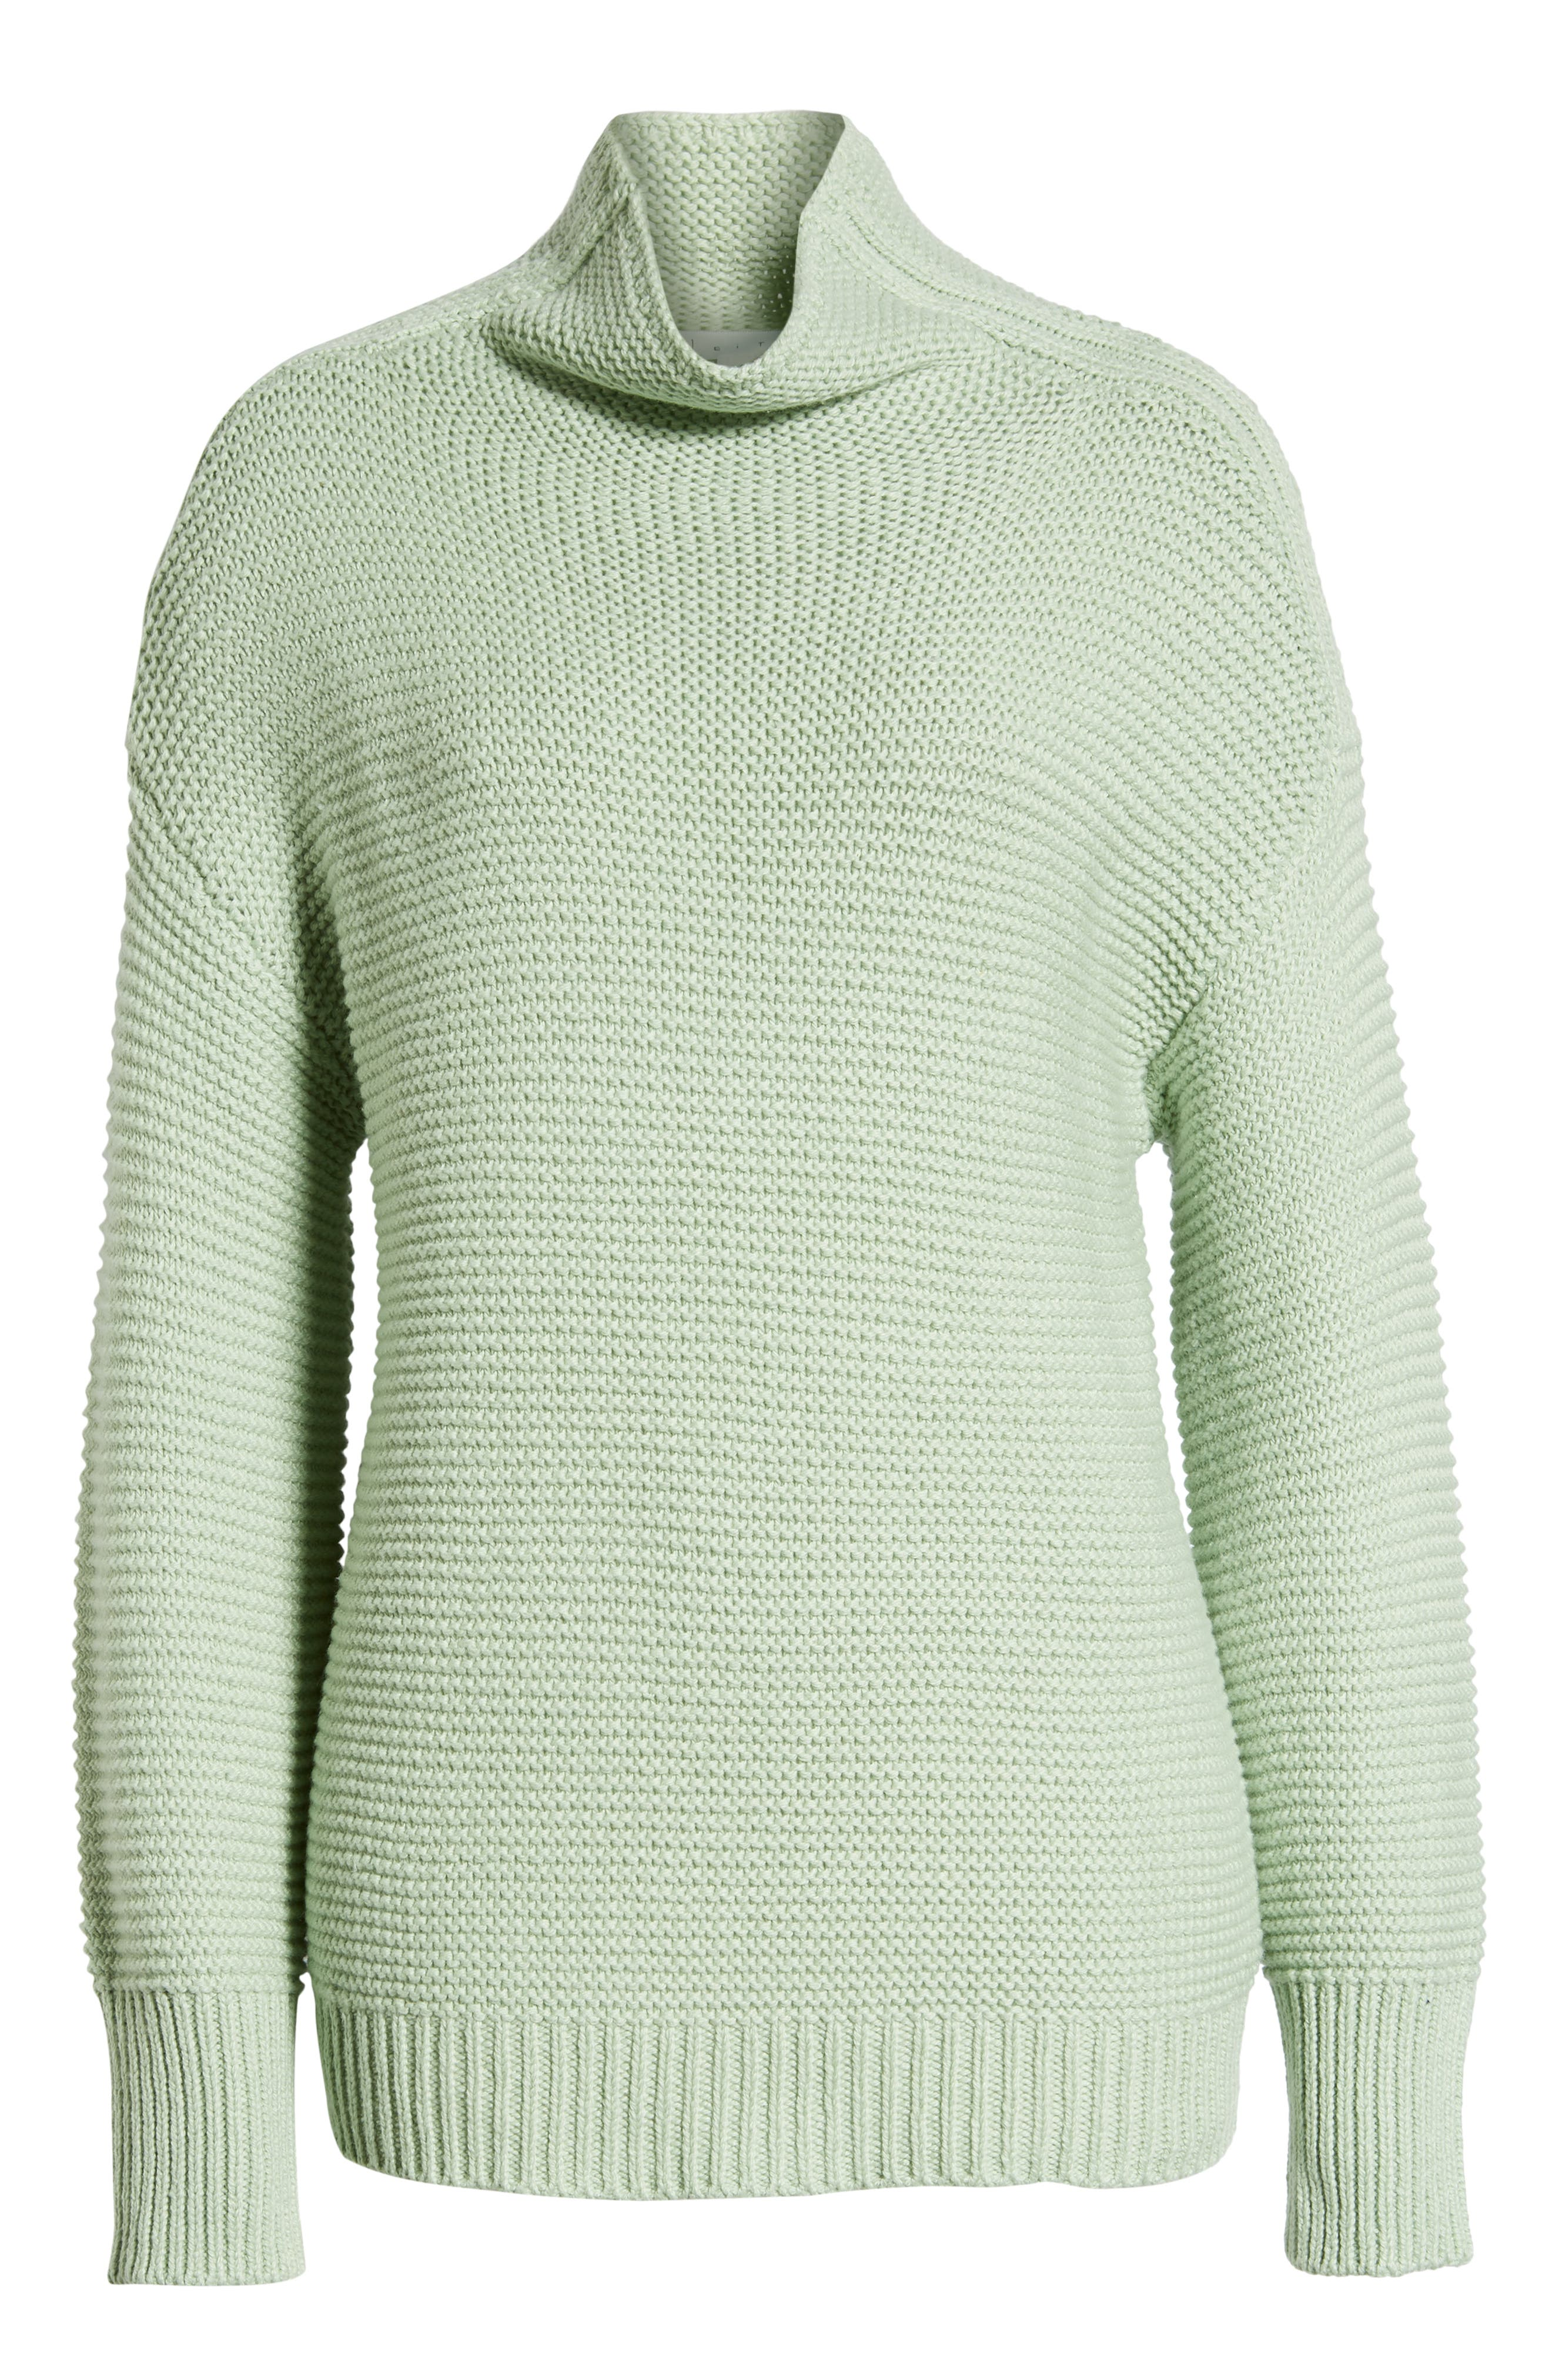 Turtleneck Sweater,                             Alternate thumbnail 6, color,                             GREEN GHOST